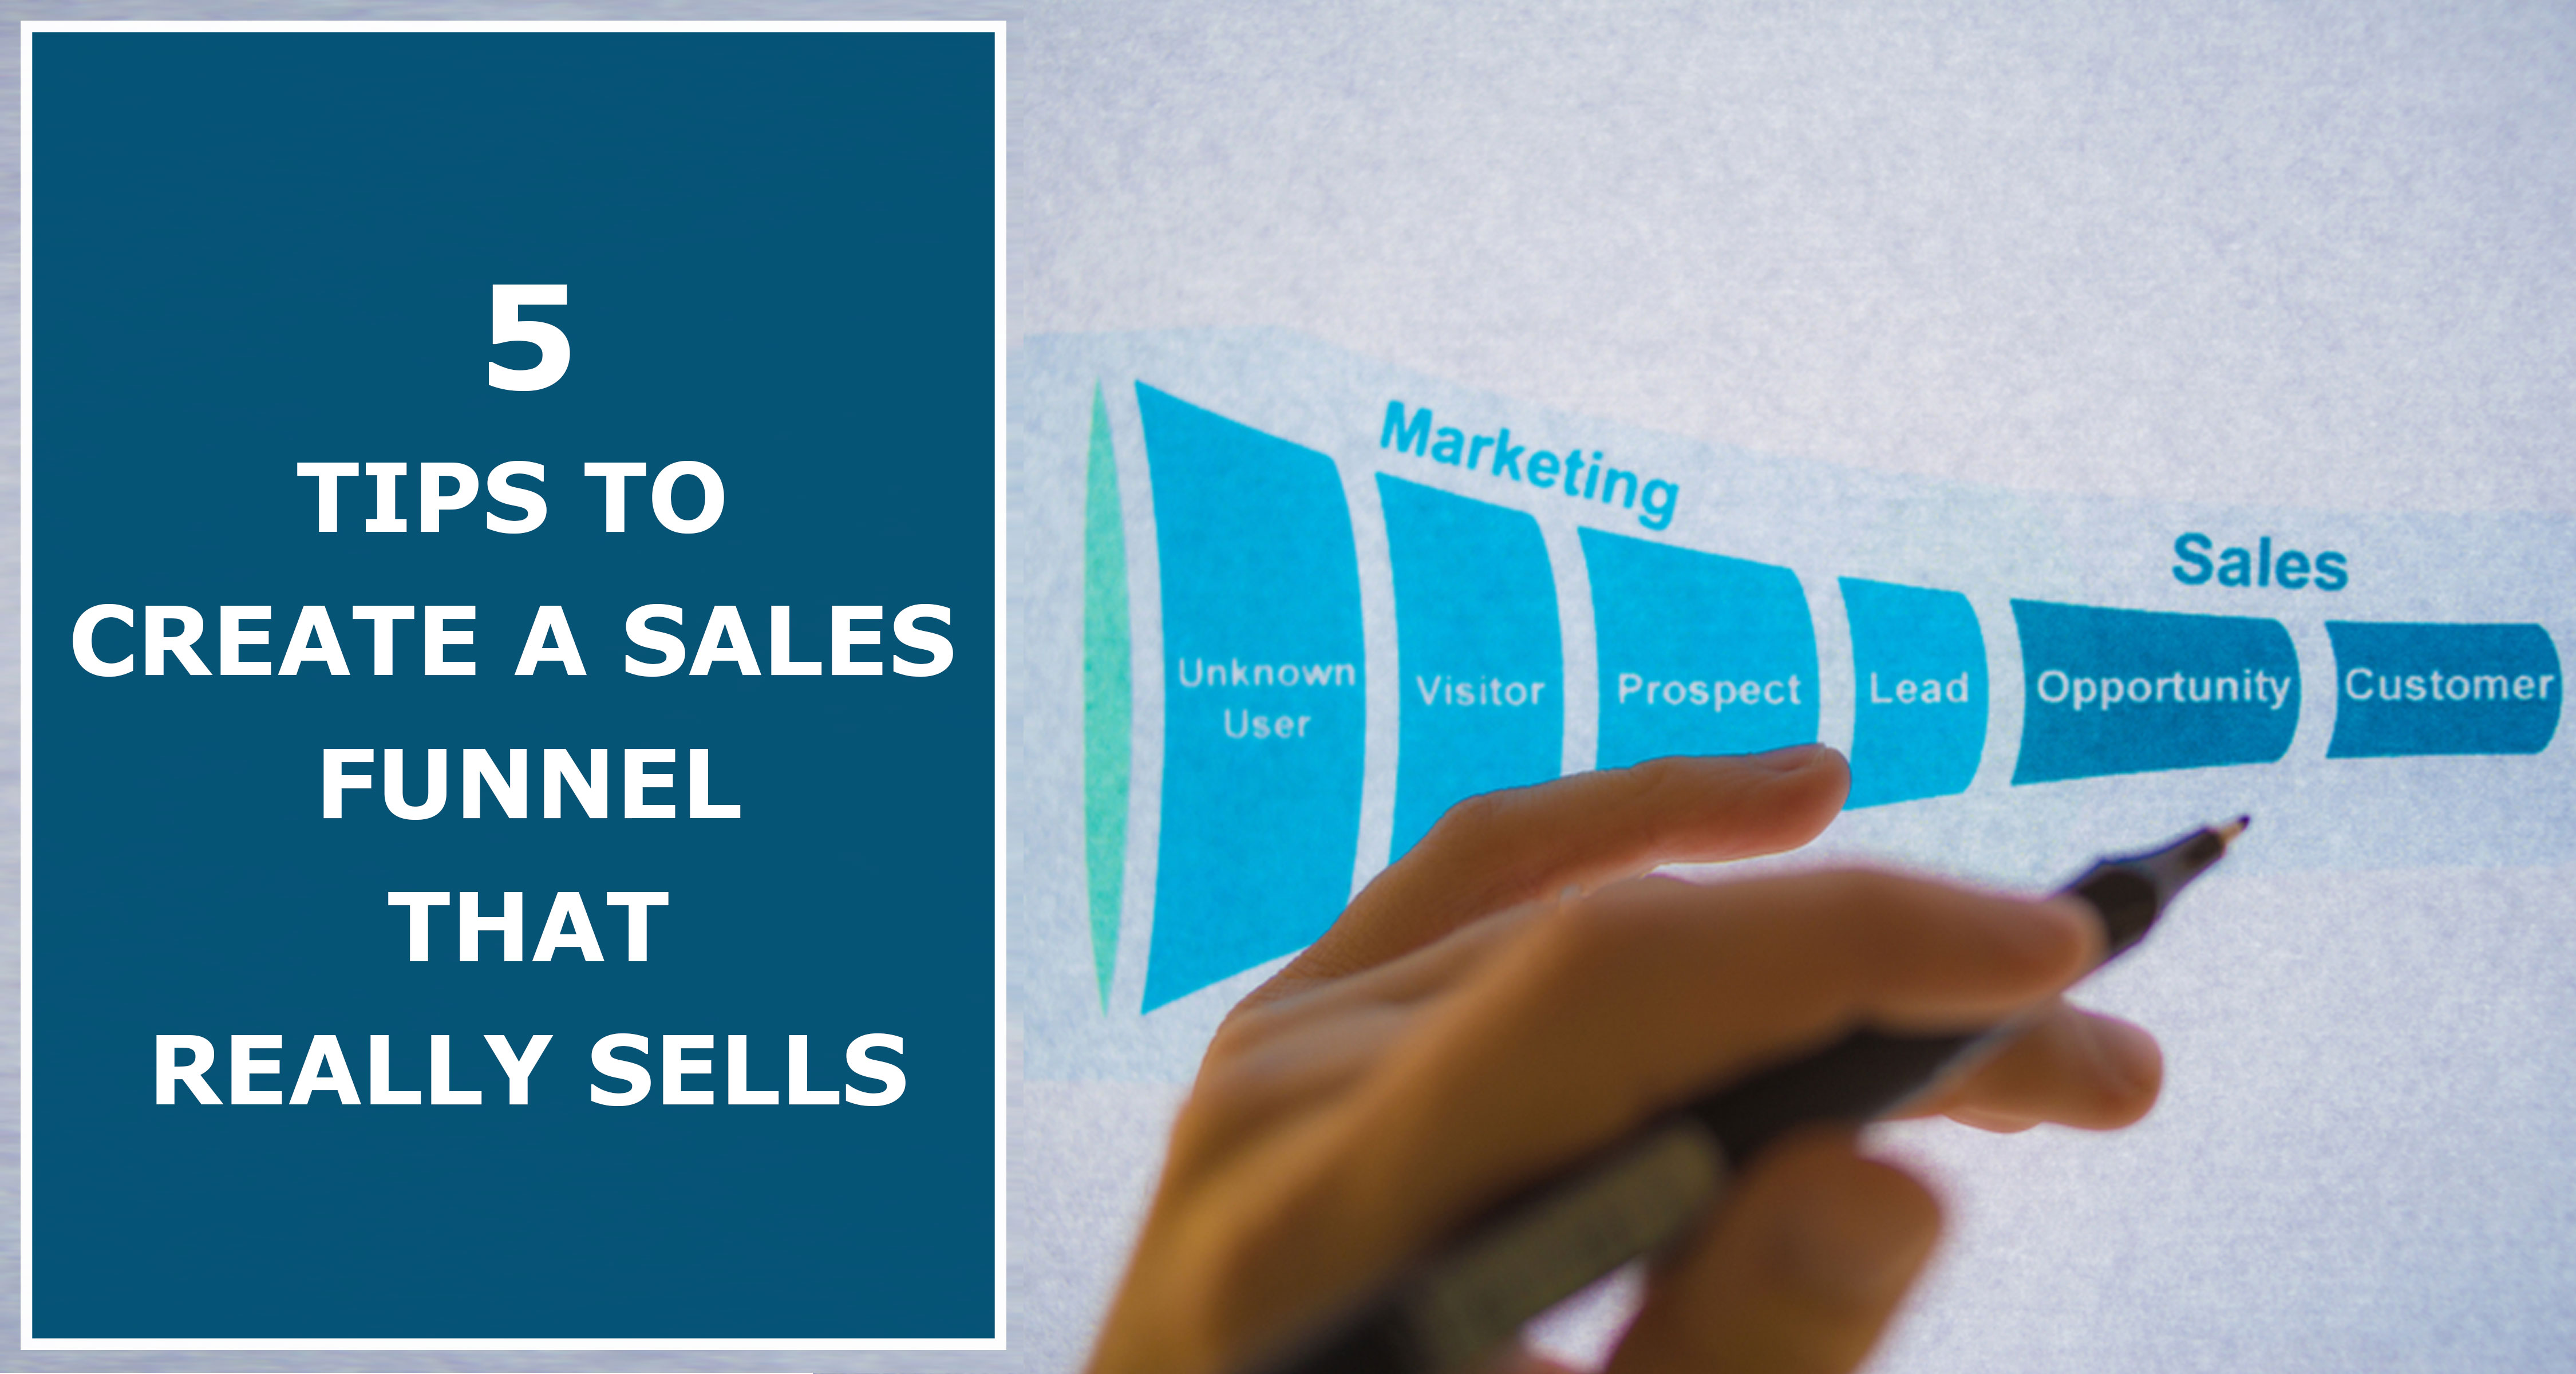 5-Tips-To-Create-A-Sales-Funnel-That-Really-sells